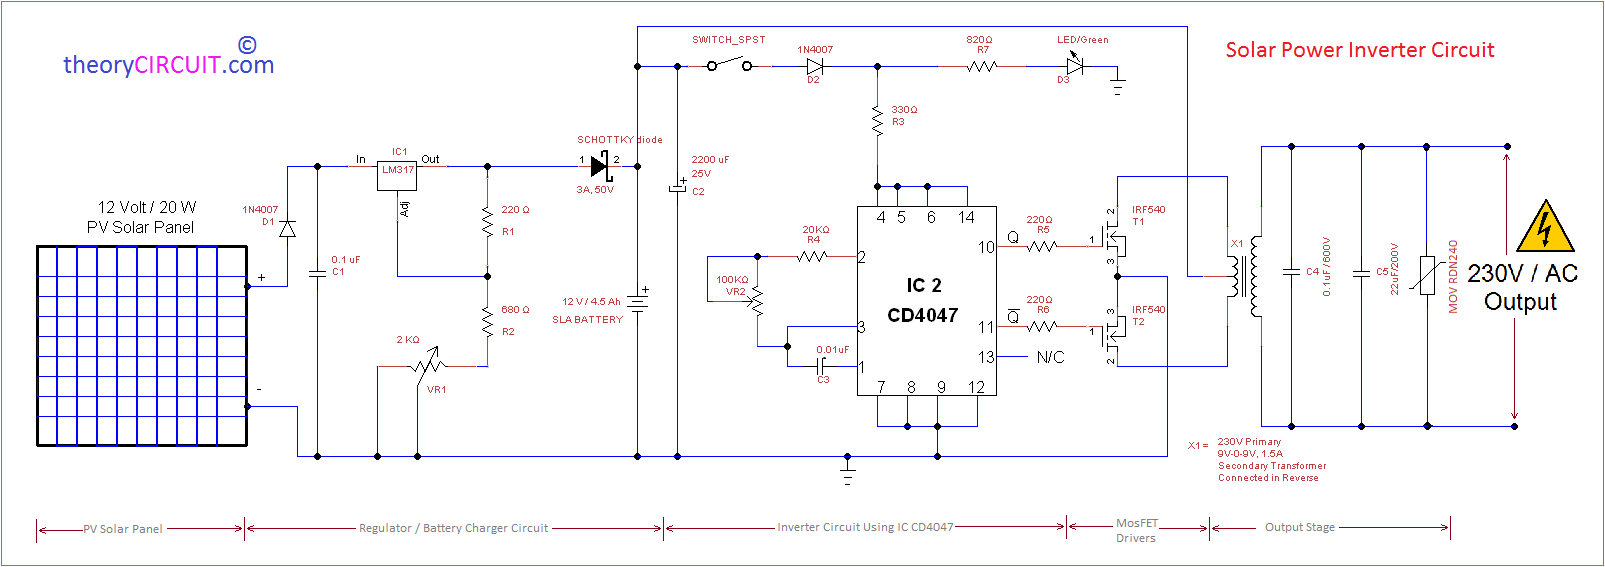 PV Solar Inverter Circuit Diagram - Circuit diagram of an inverter